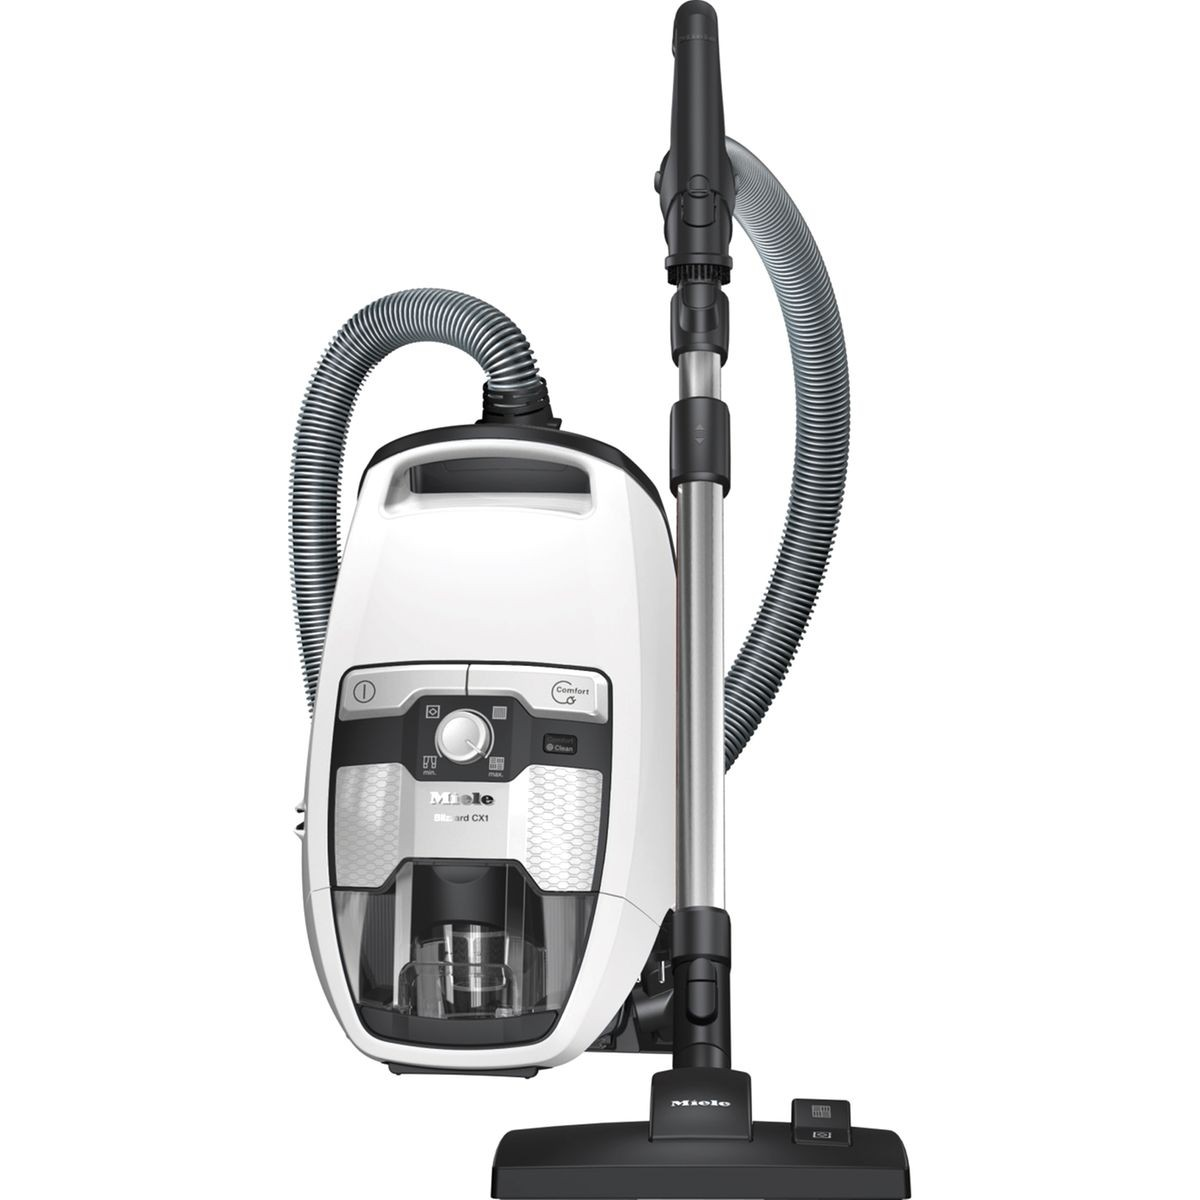 Aspirateur sans sac Blizzard CX1 Excellence - Miele